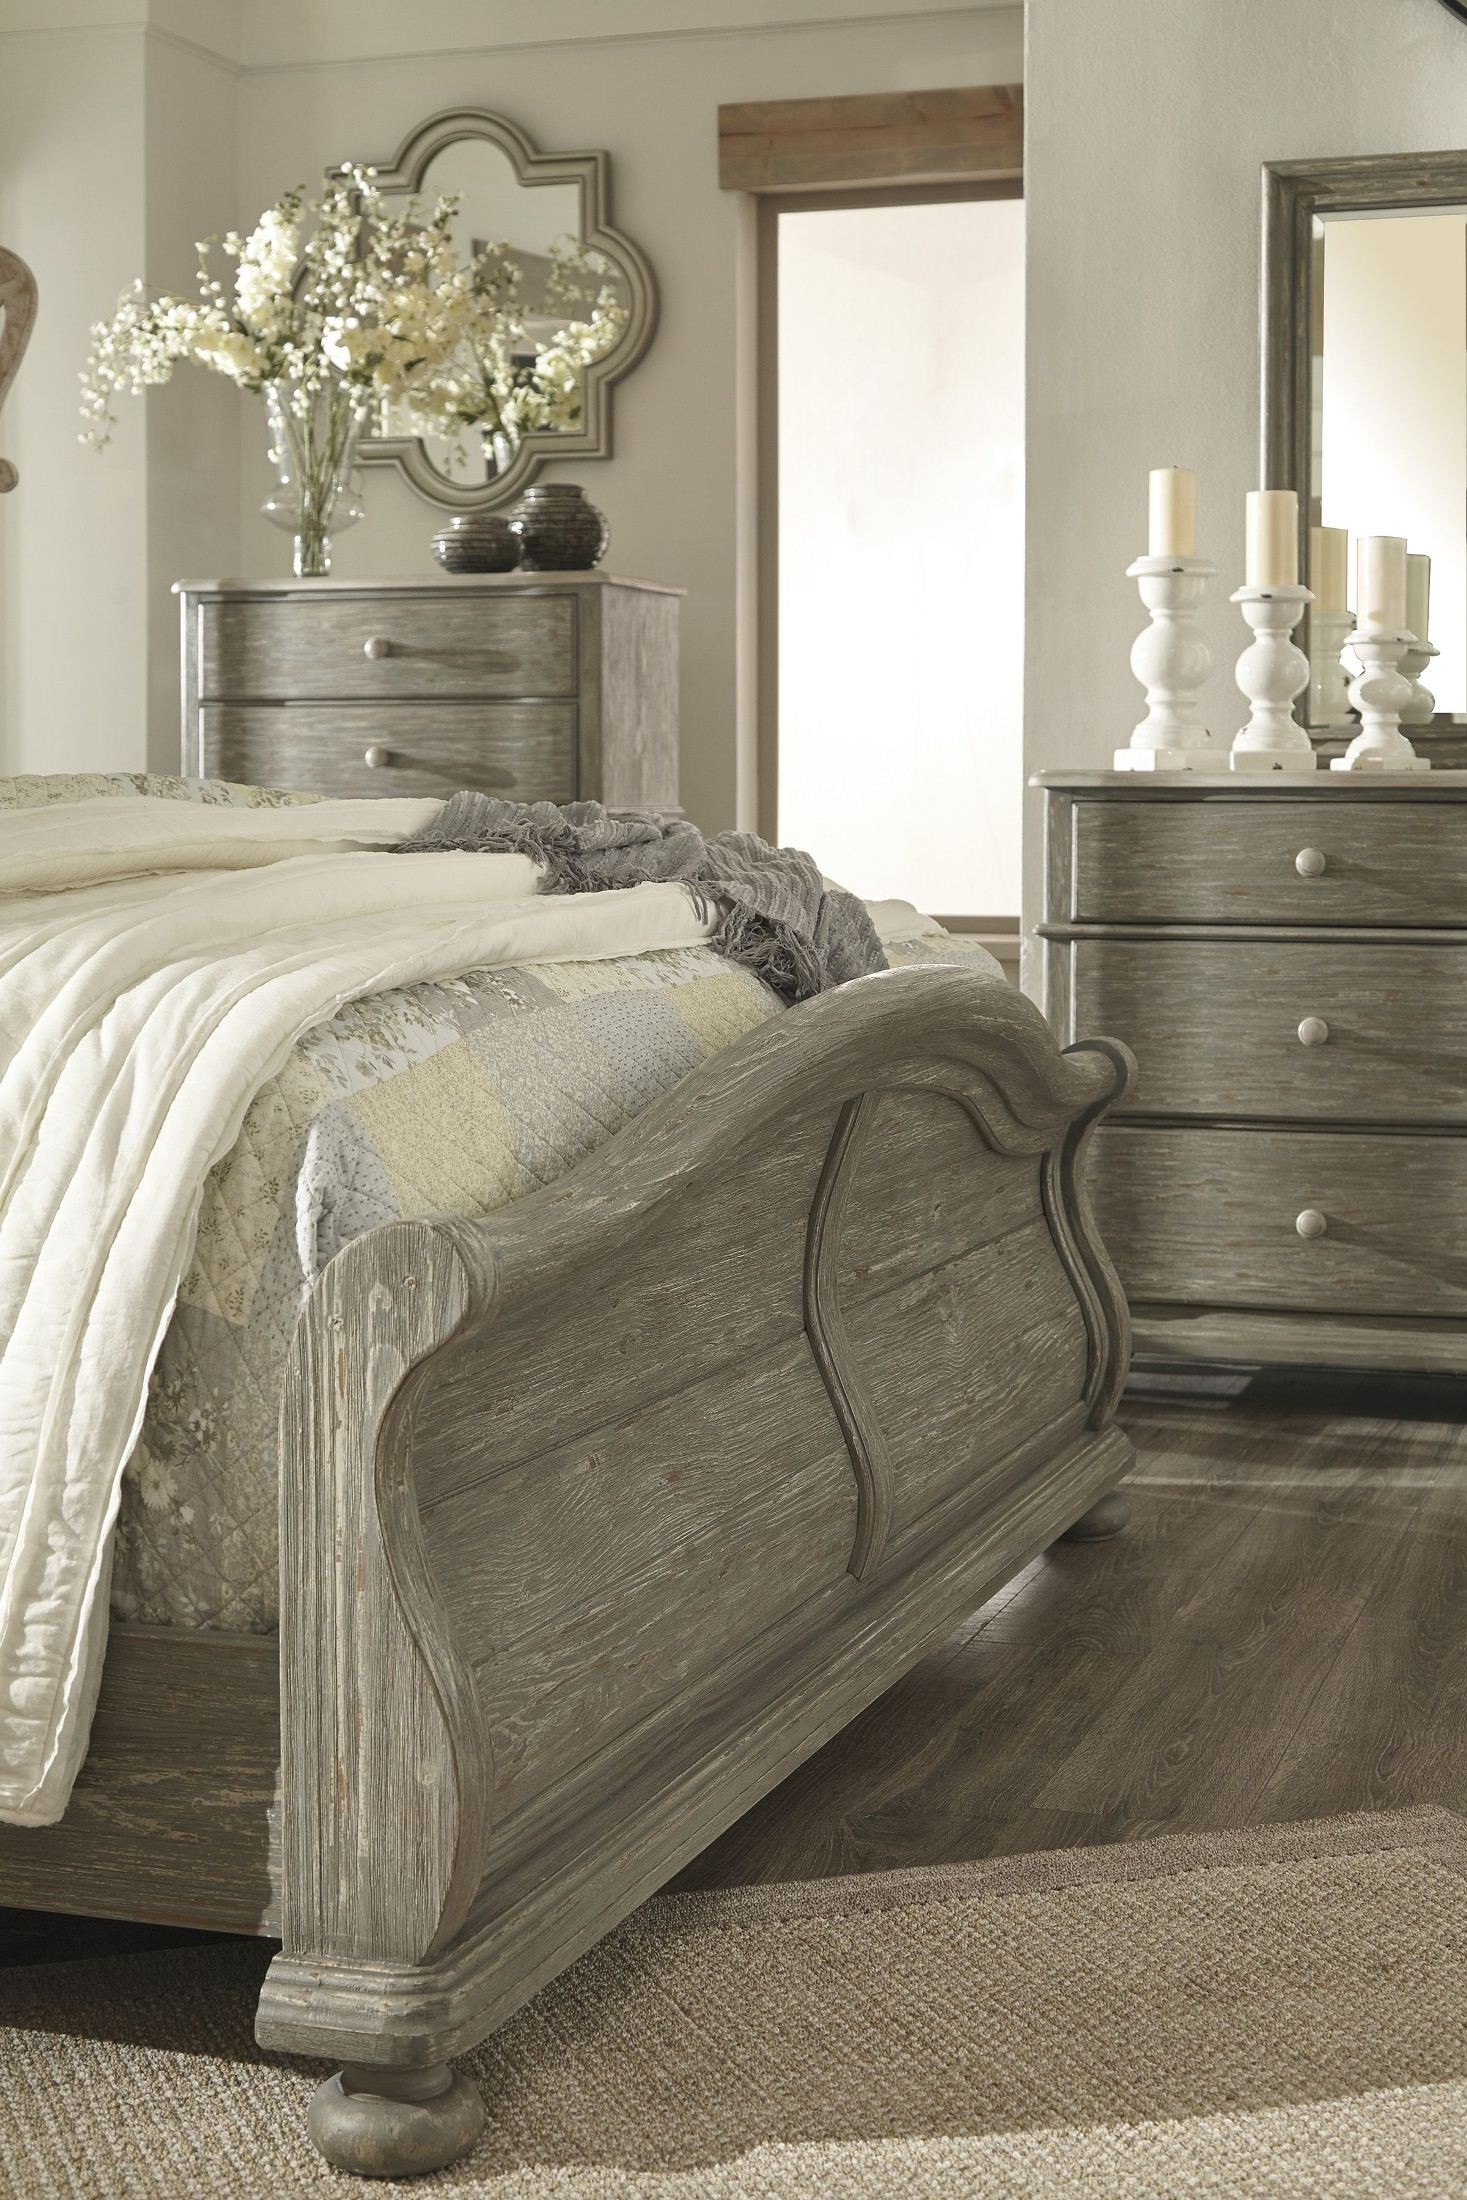 Marleny Gray and Whitewash Sleigh Bedroom Set from Ashley ...